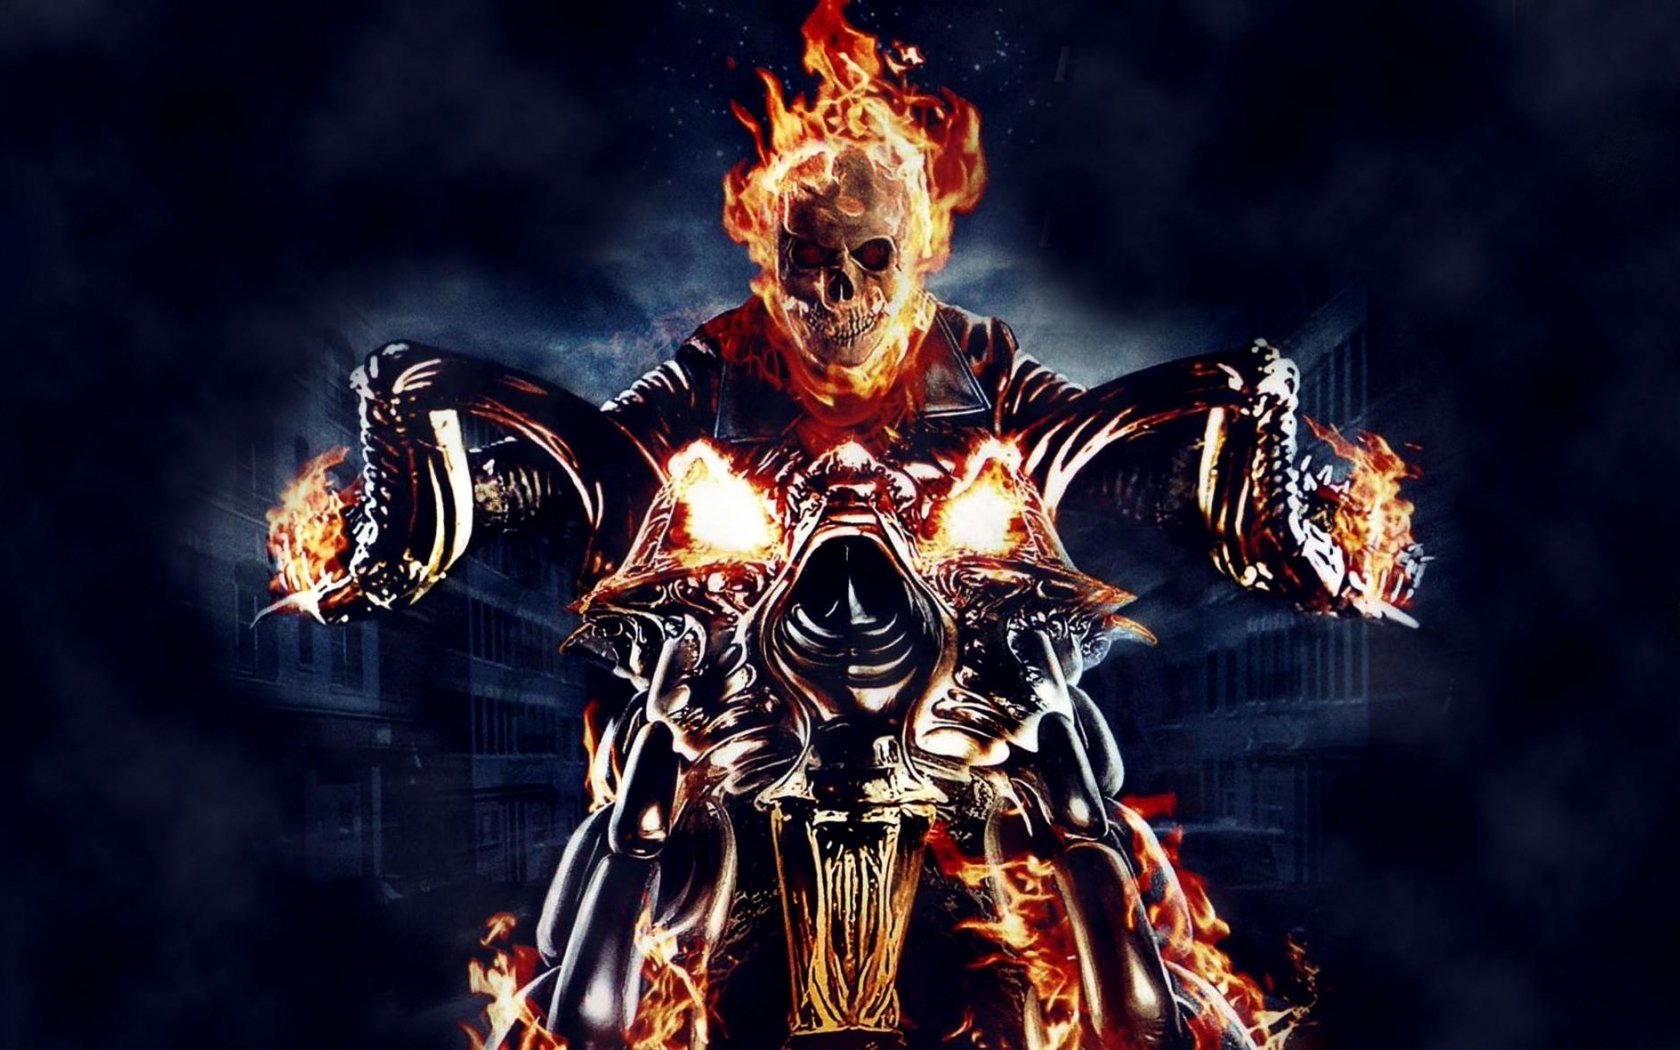 ghost rider motorcycle wallpaper   ForWallpapercom 1680x1050